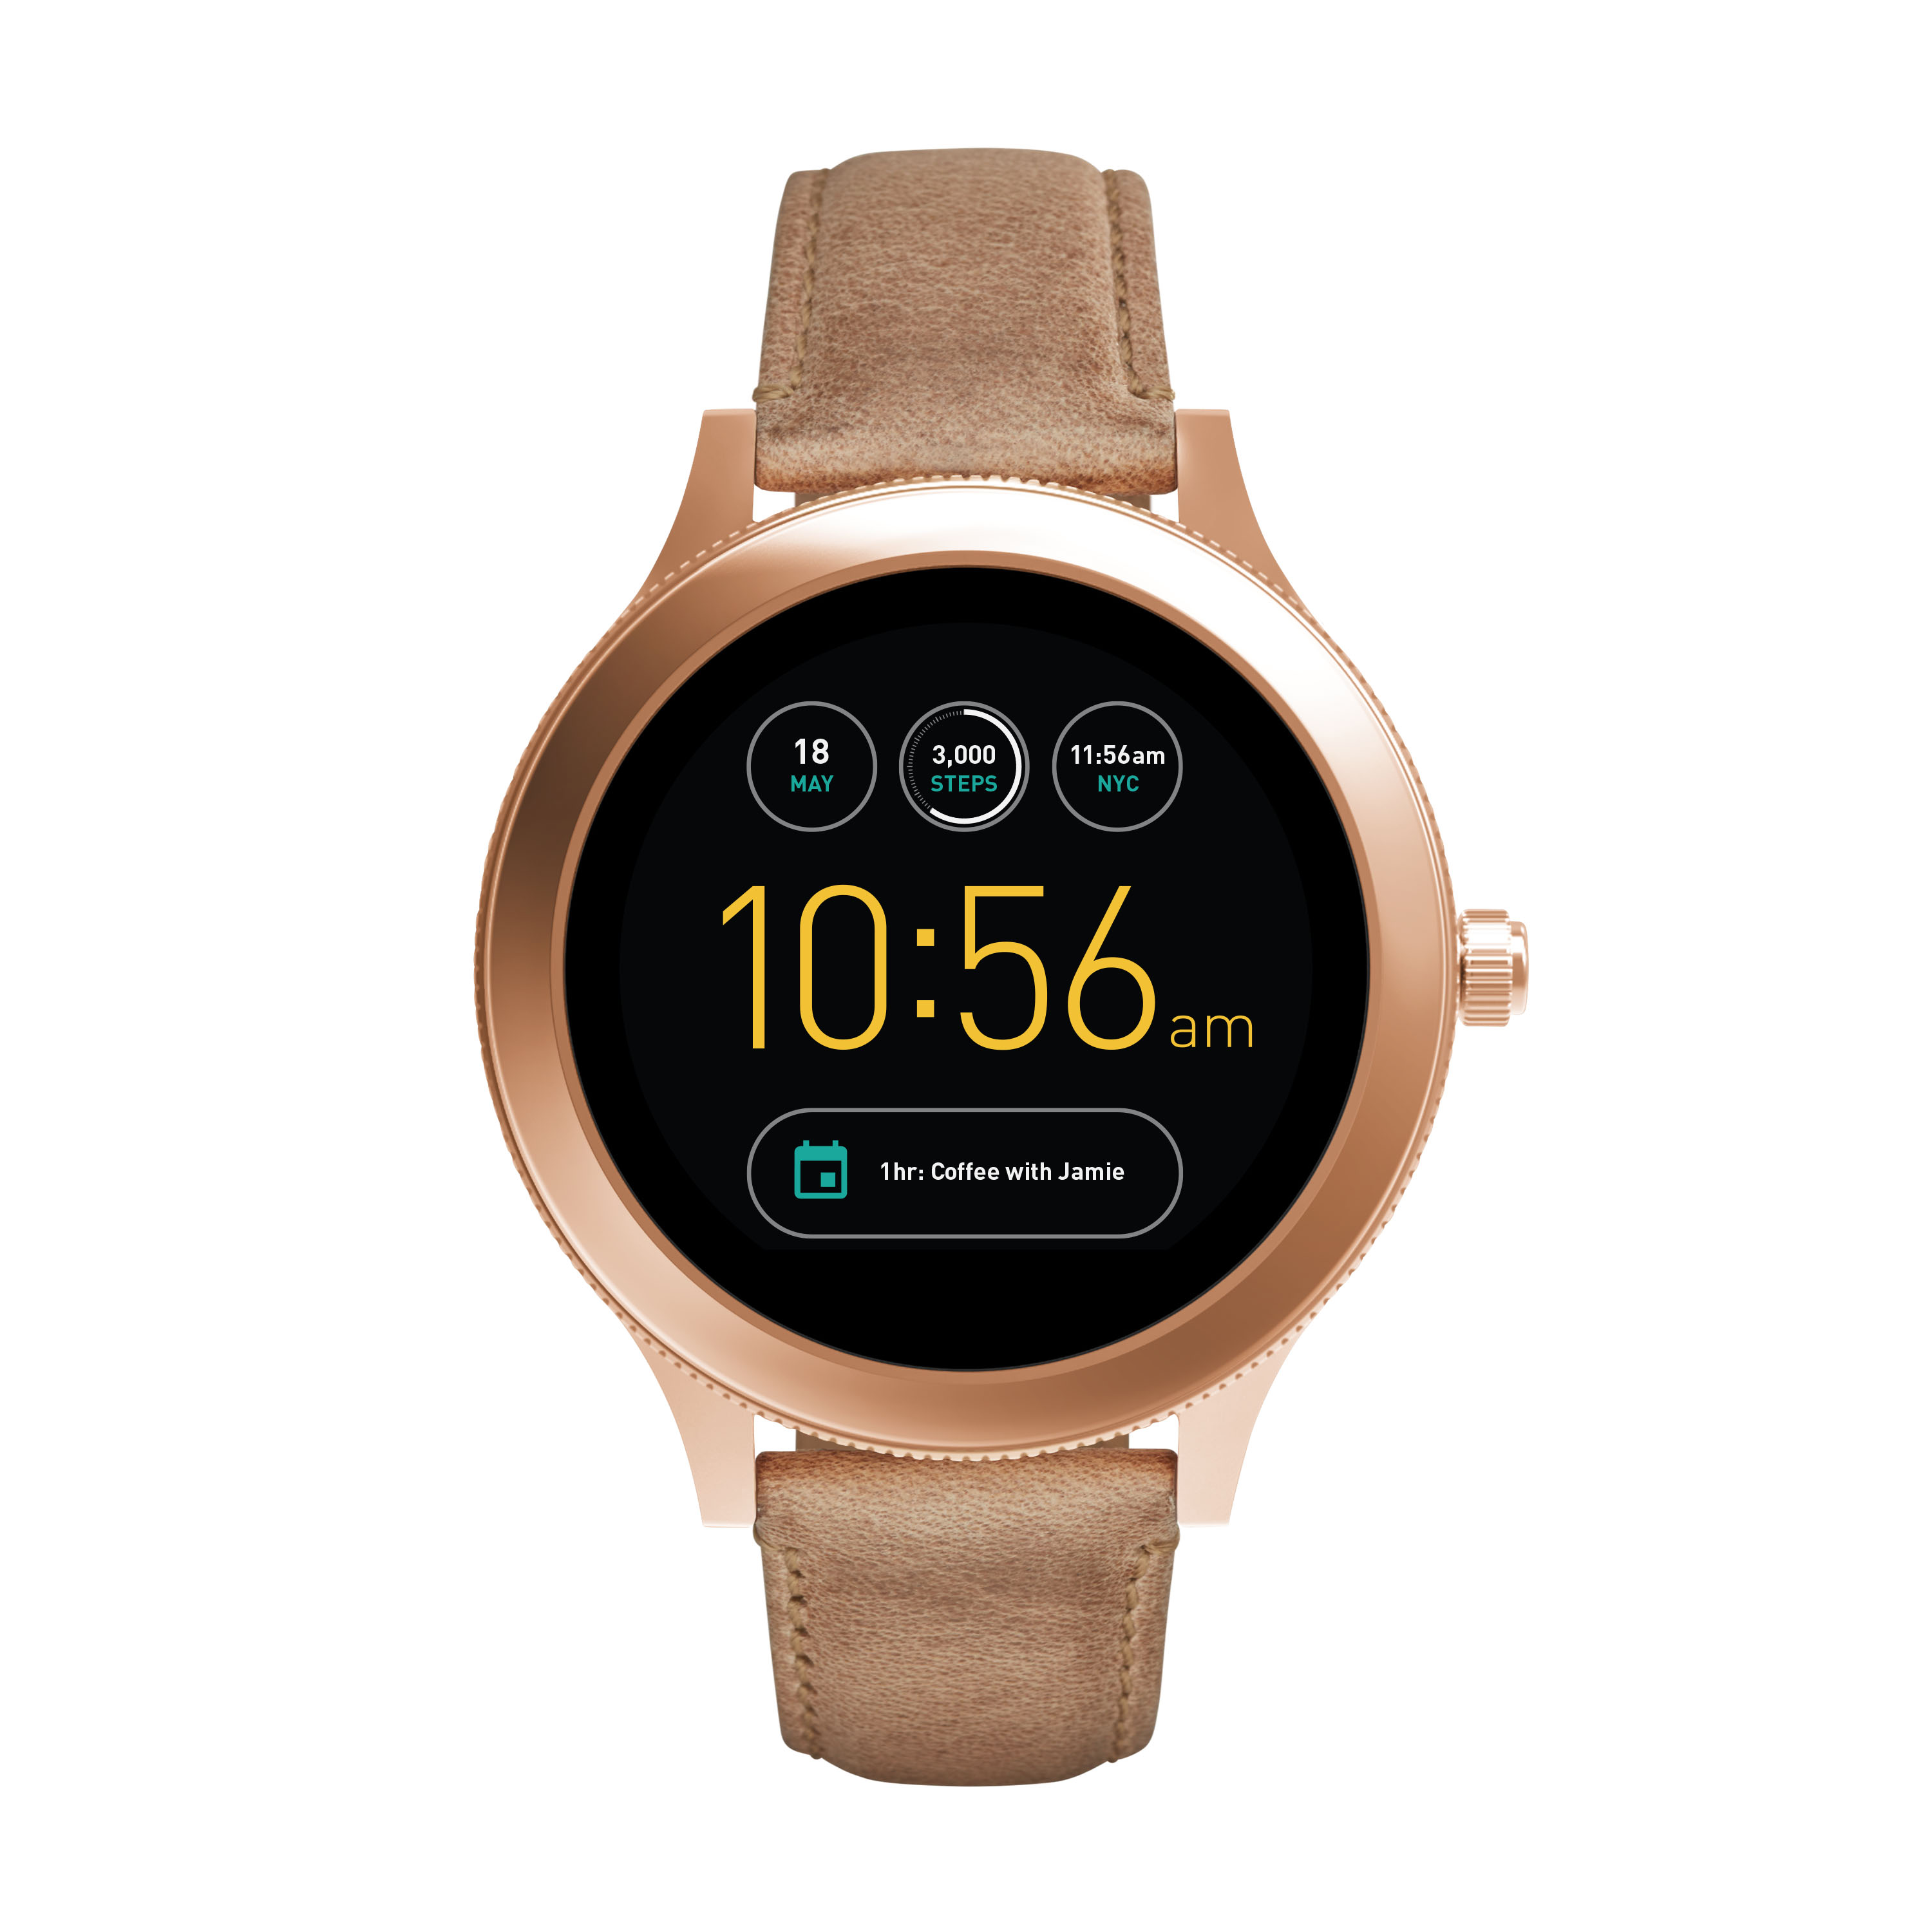 Fossil announces a slew of branded hybrid analog and ...